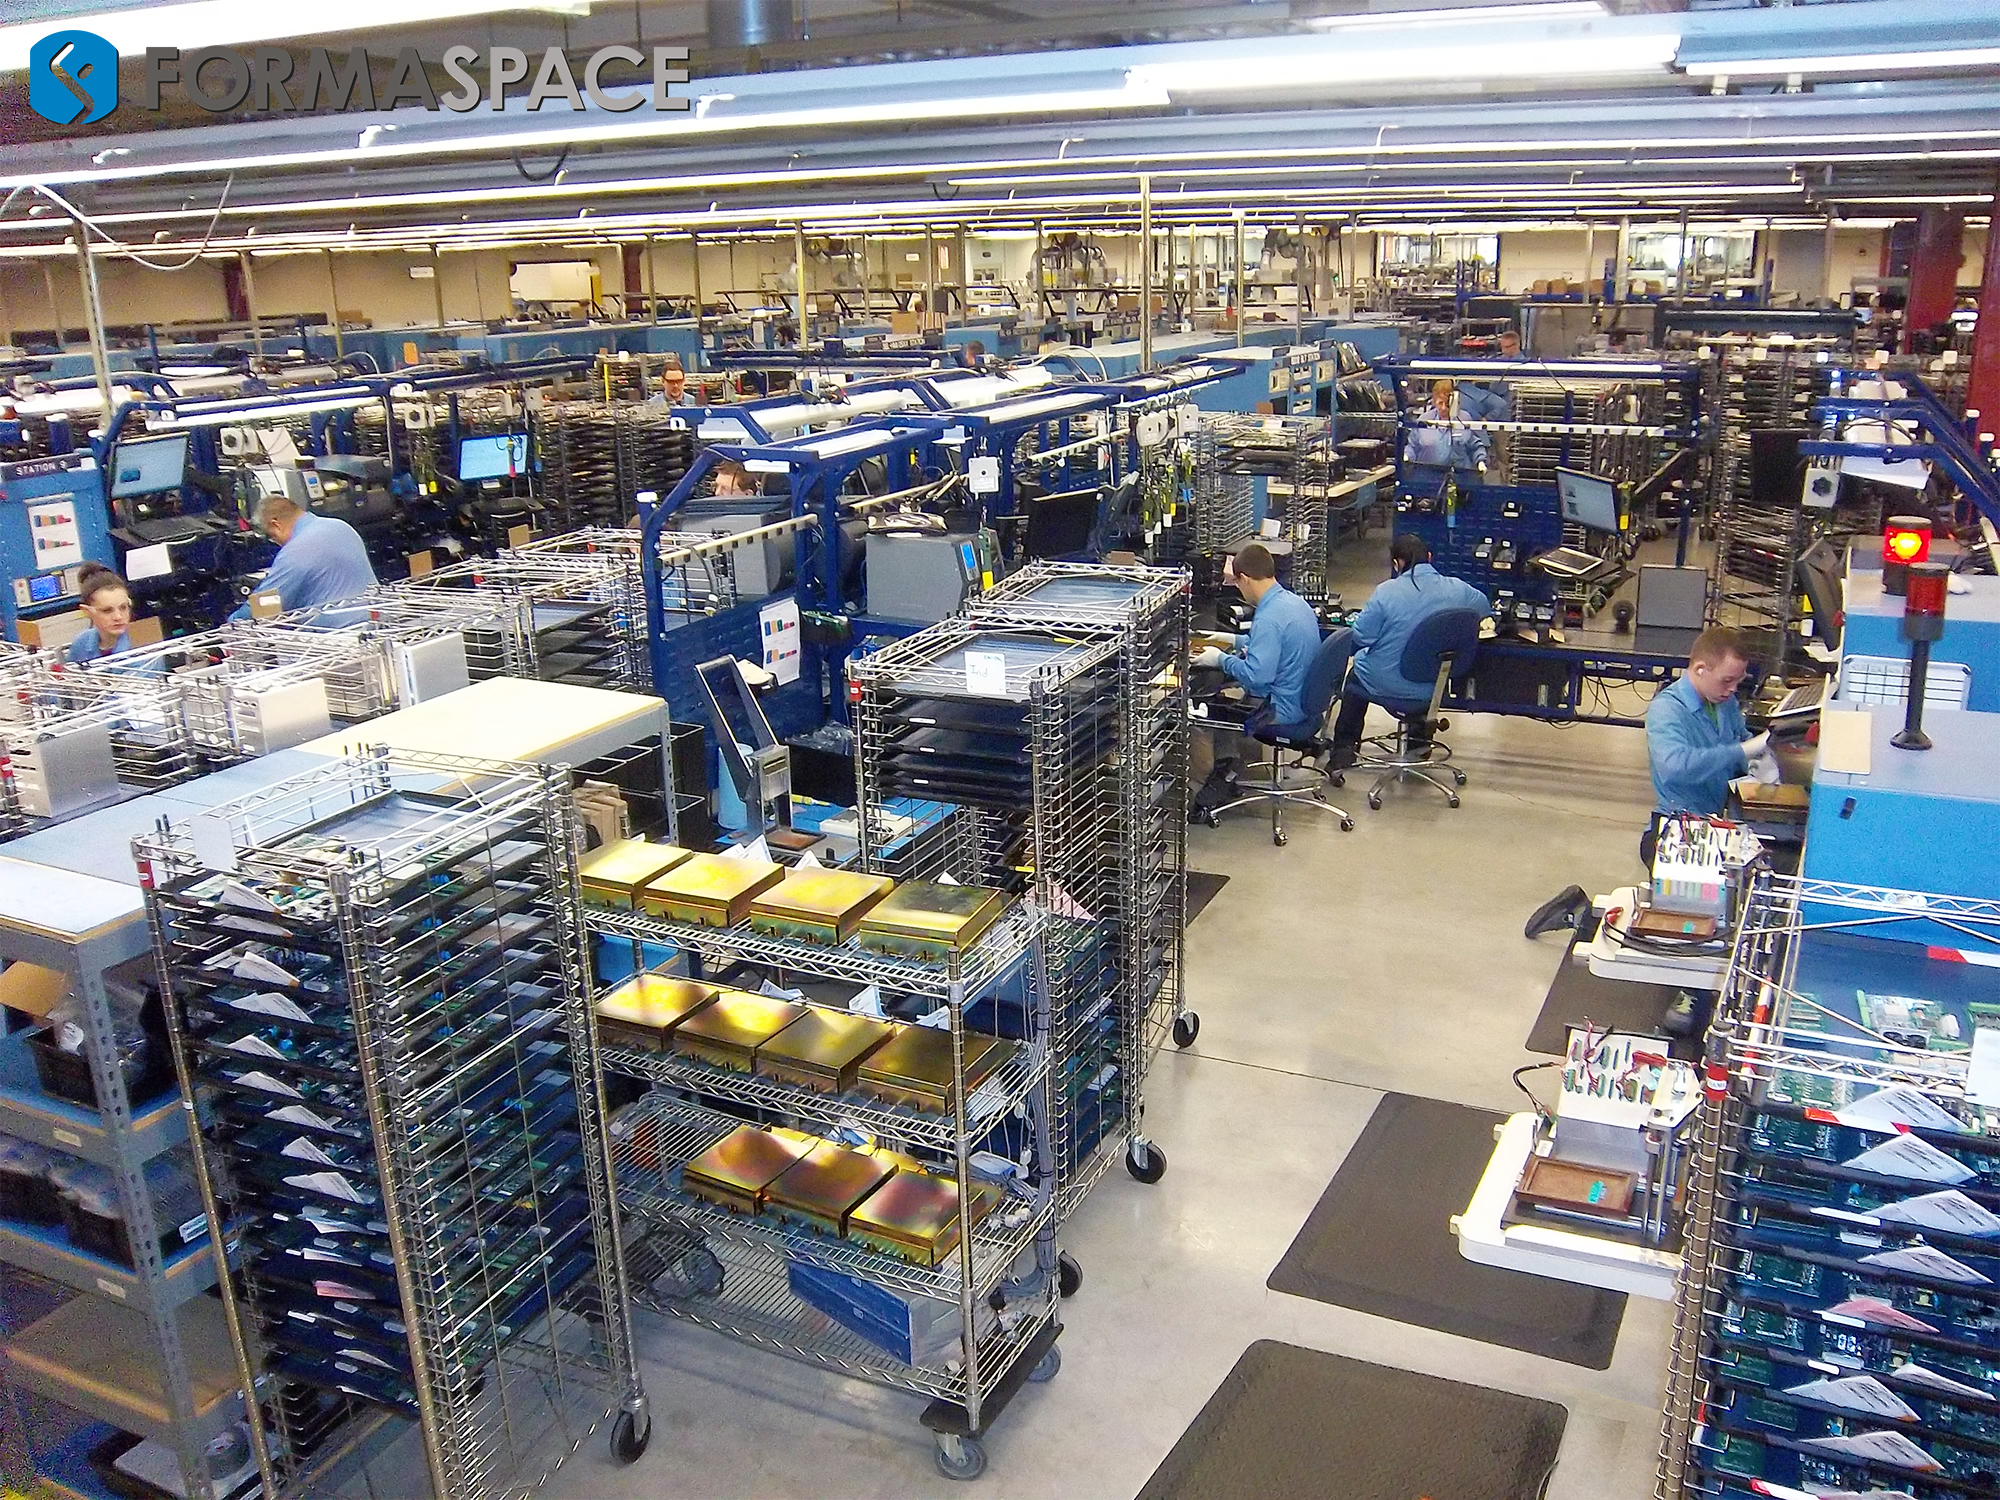 electronics-tech-lab-workers-industrial-racks